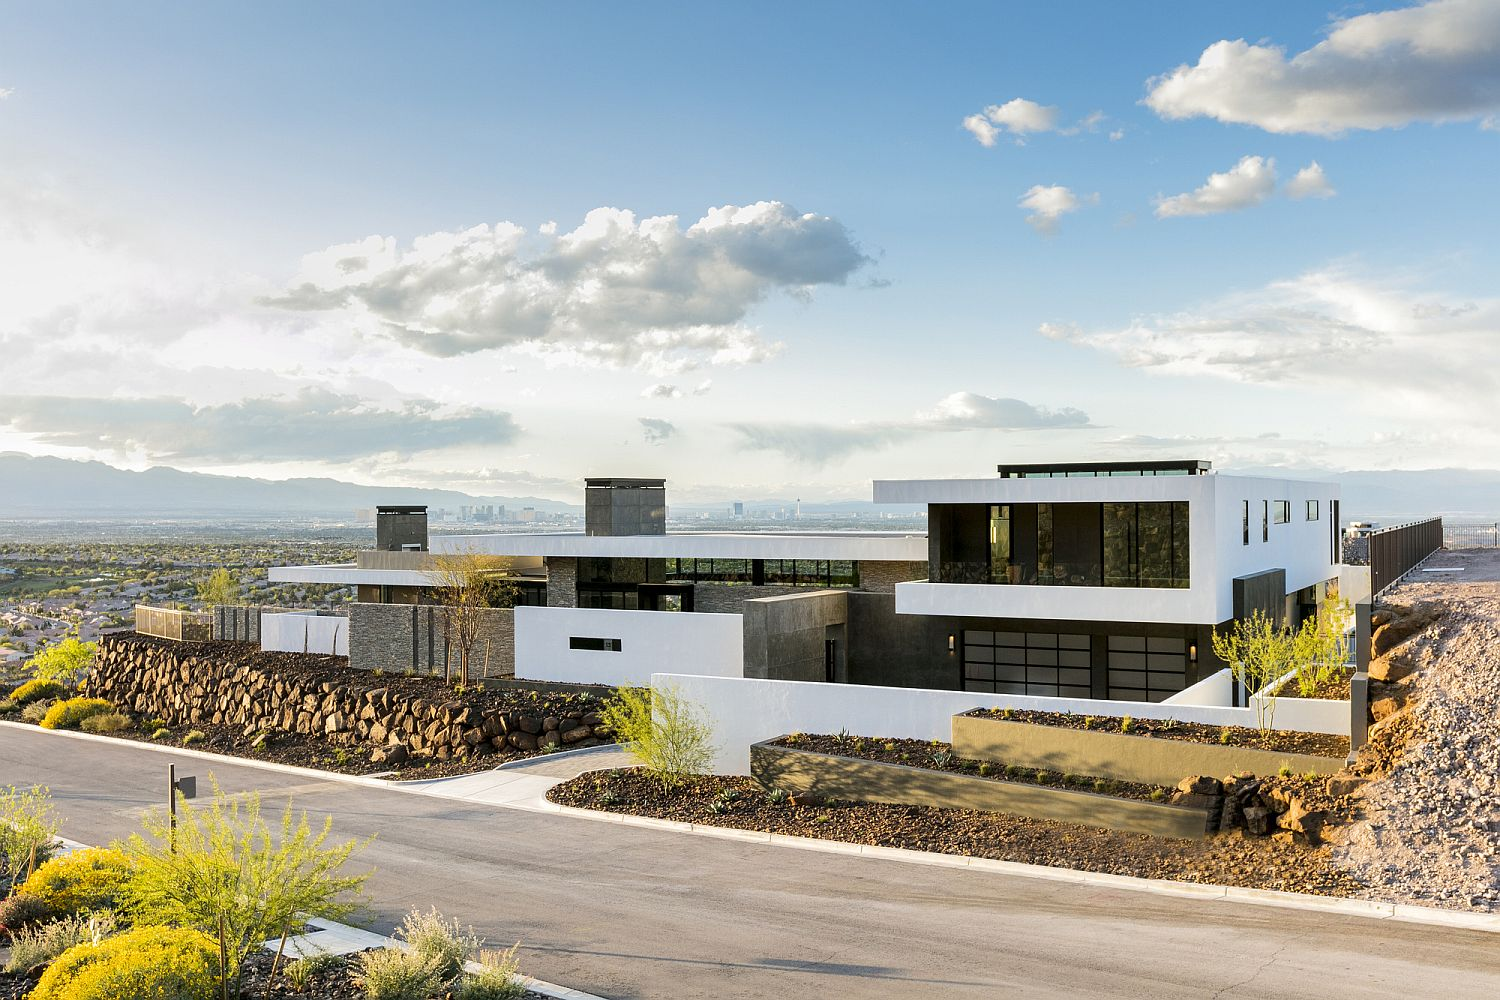 View of the Ascaya from the street Contemporary Luxury Home with Vegas Shining Bright in the Distance!